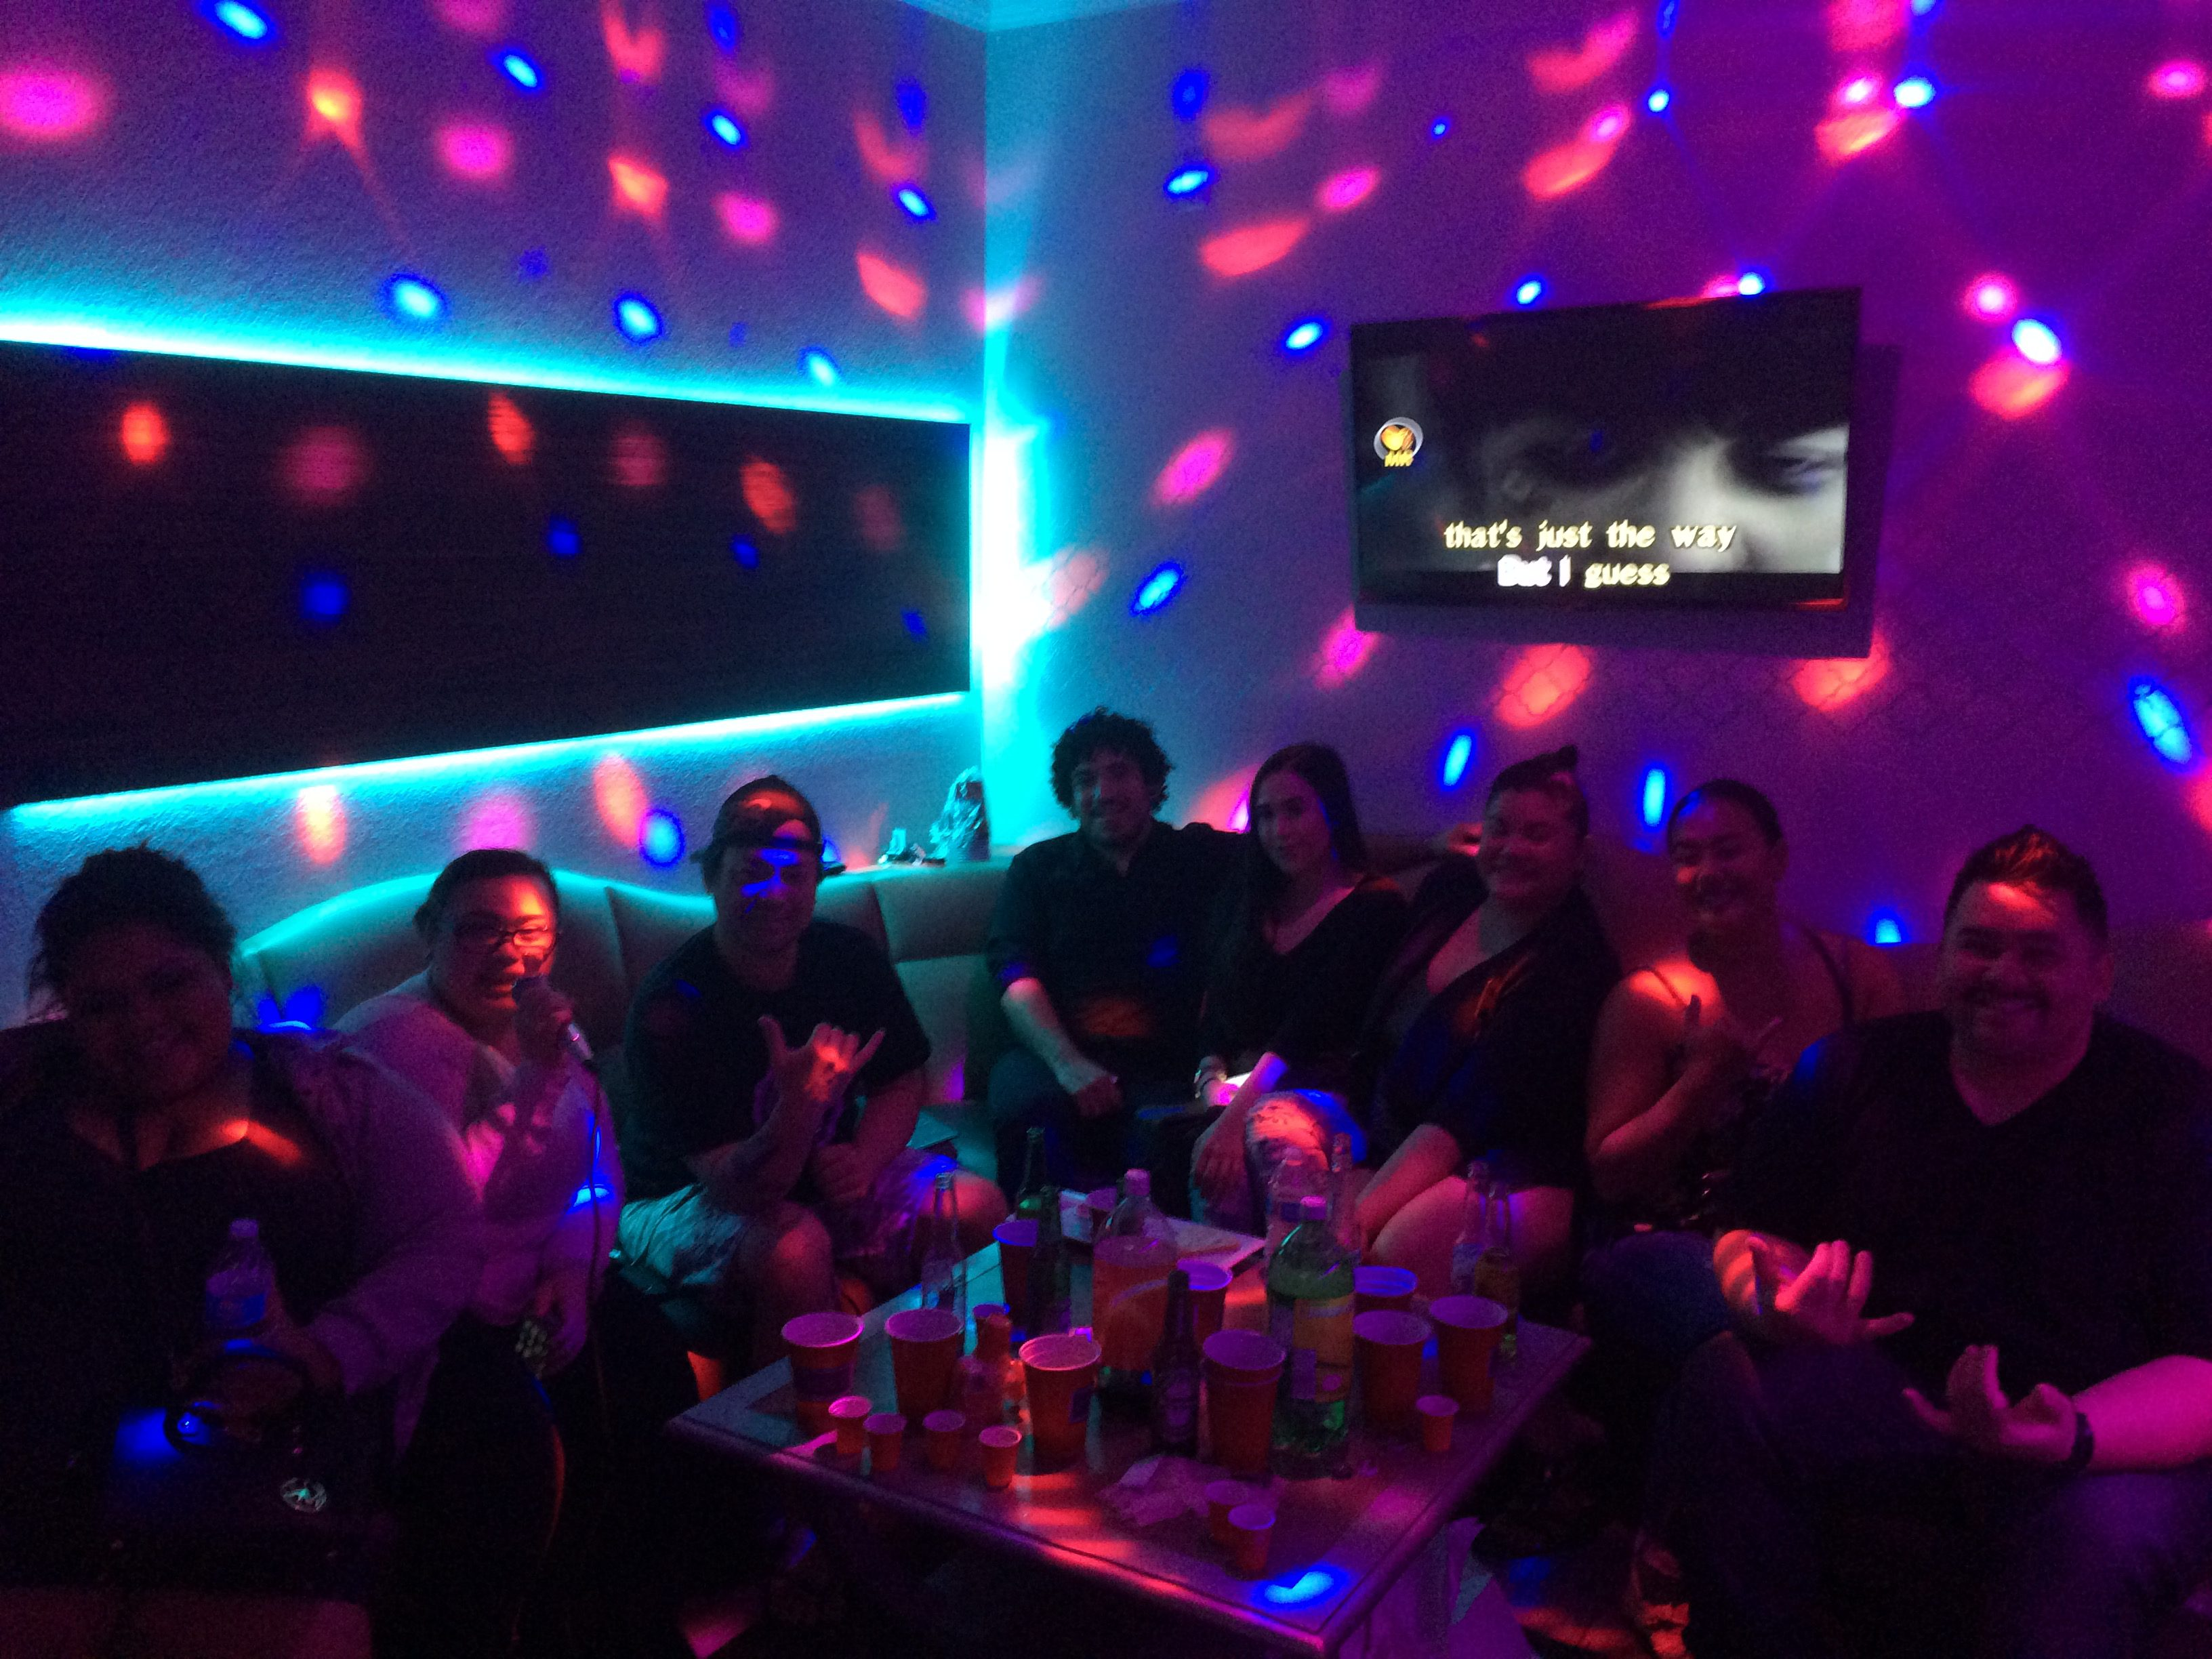 Go Go Karaoke room with group of people having fun at a party, sitting on the couch, karaoke monitor is showing words and someone is holding a microphone